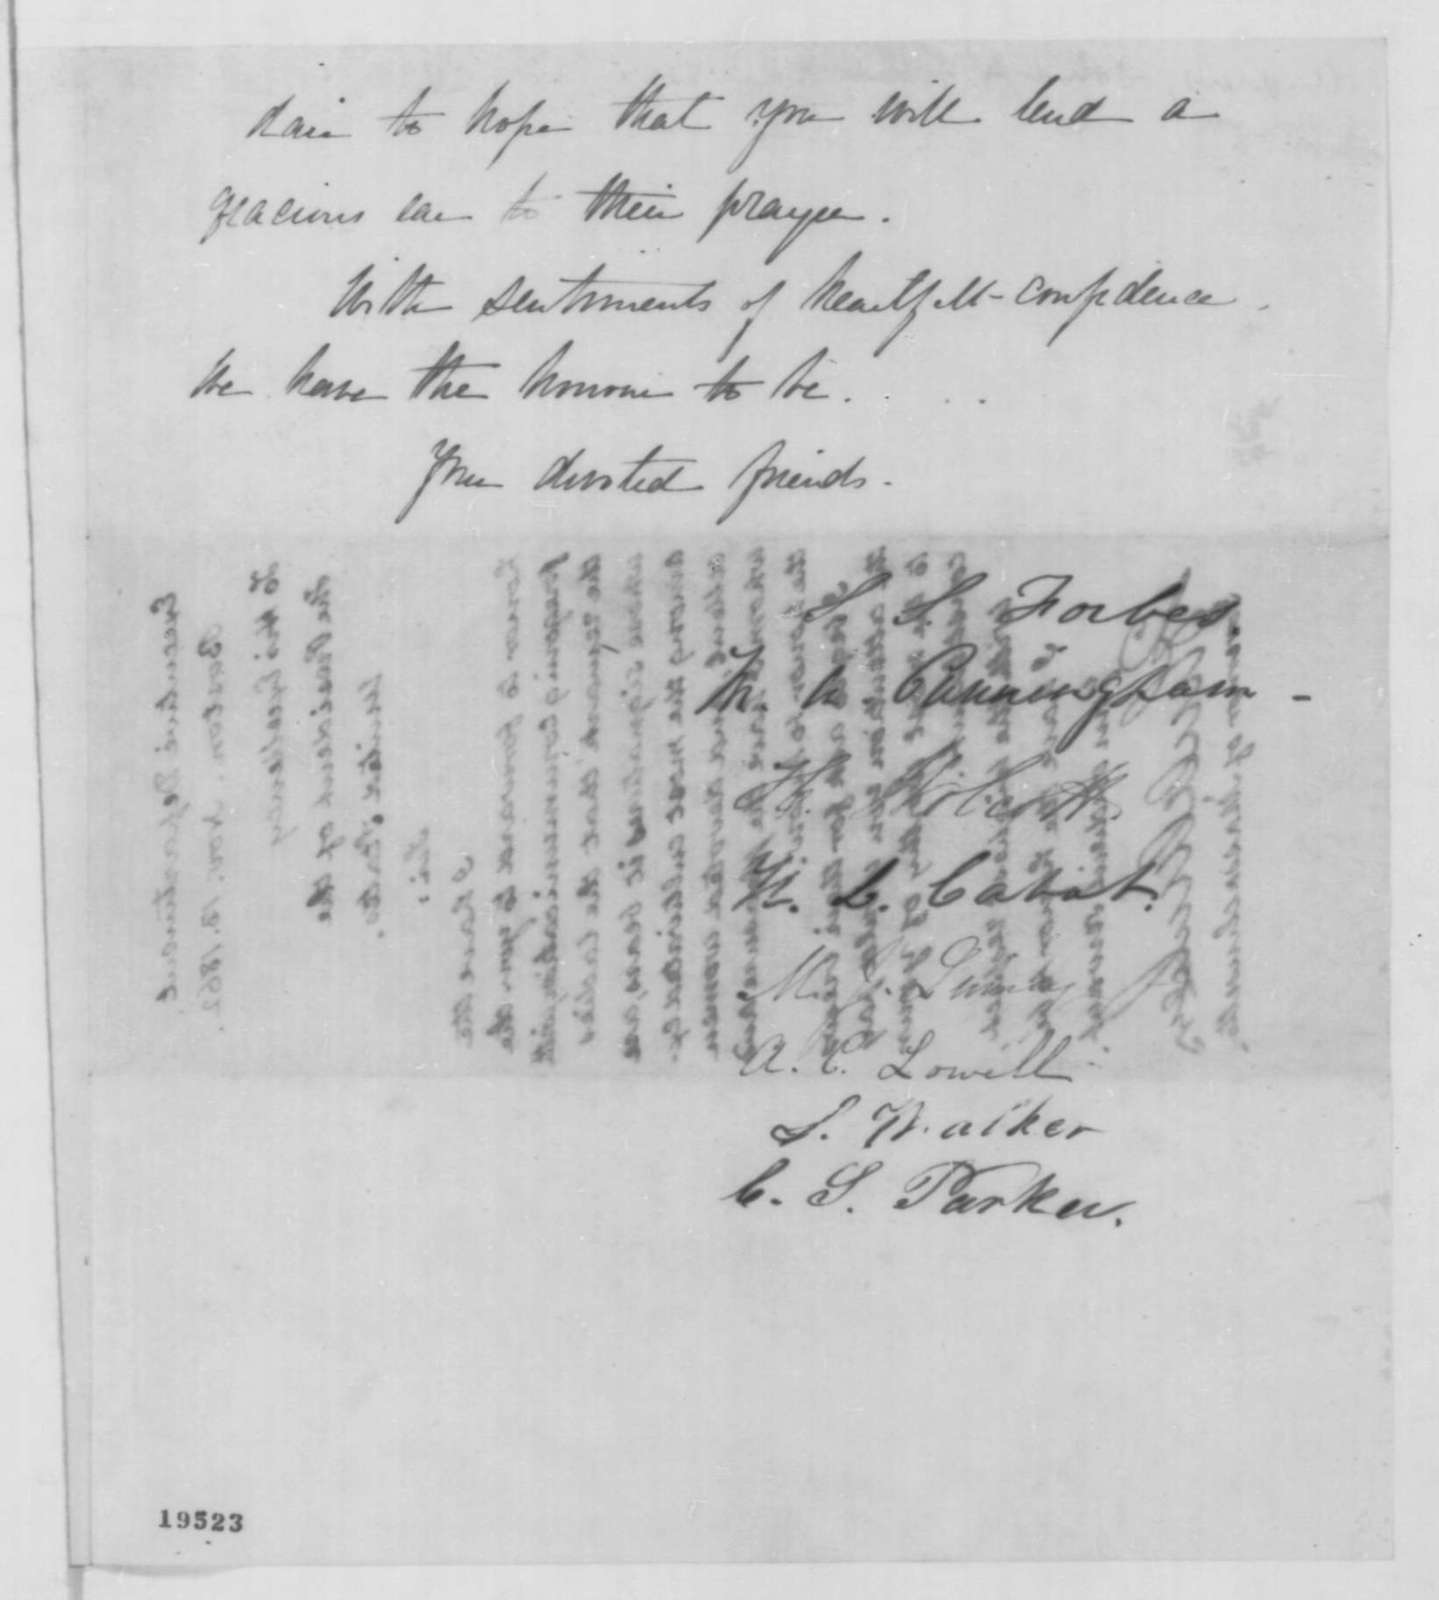 S. S. Forbes, et al. to Abraham Lincoln, Thursday, November 13, 1862  (Sends petition; endorsed by John A. Andrew)